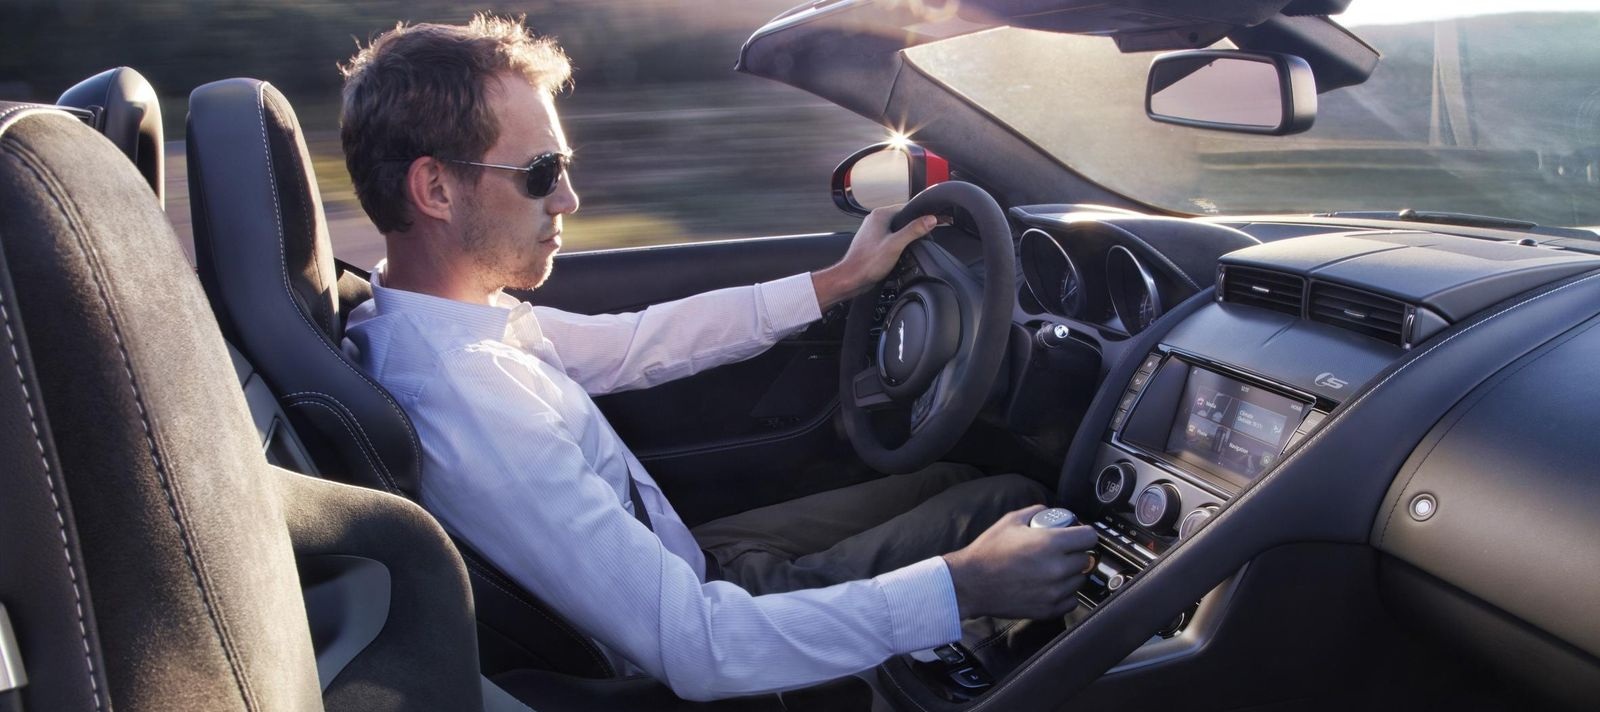 7 reasons for driving manual rides rh autoloansolutions ca Are NASCAR's Manual or Automatic which car is faster automatic or manual